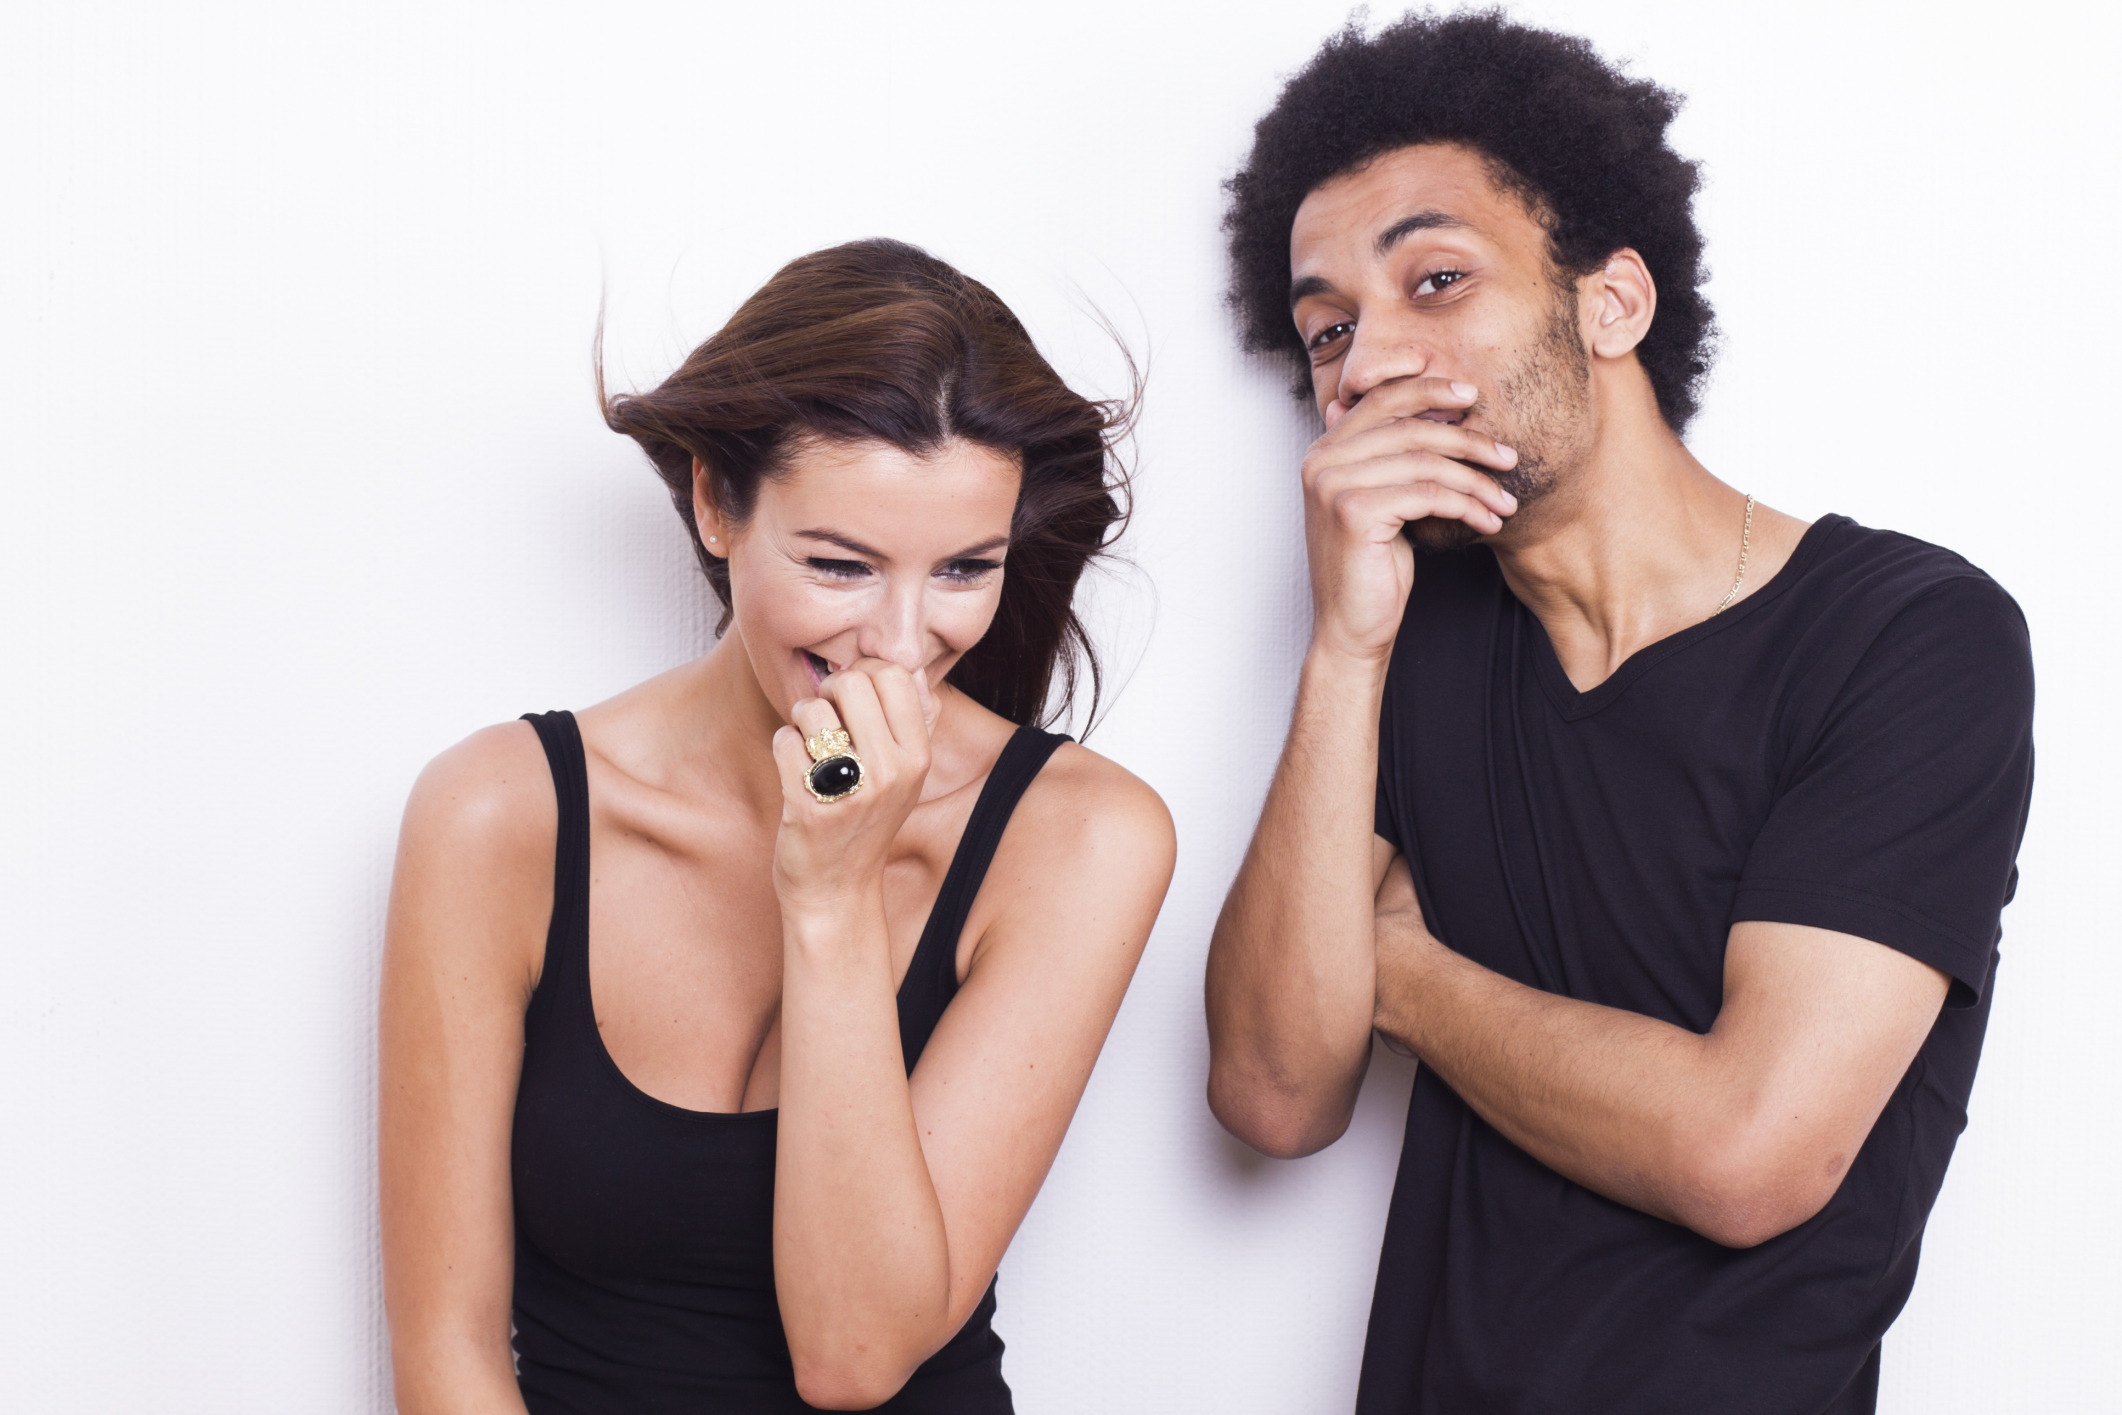 the urban dater, sex and dating advice